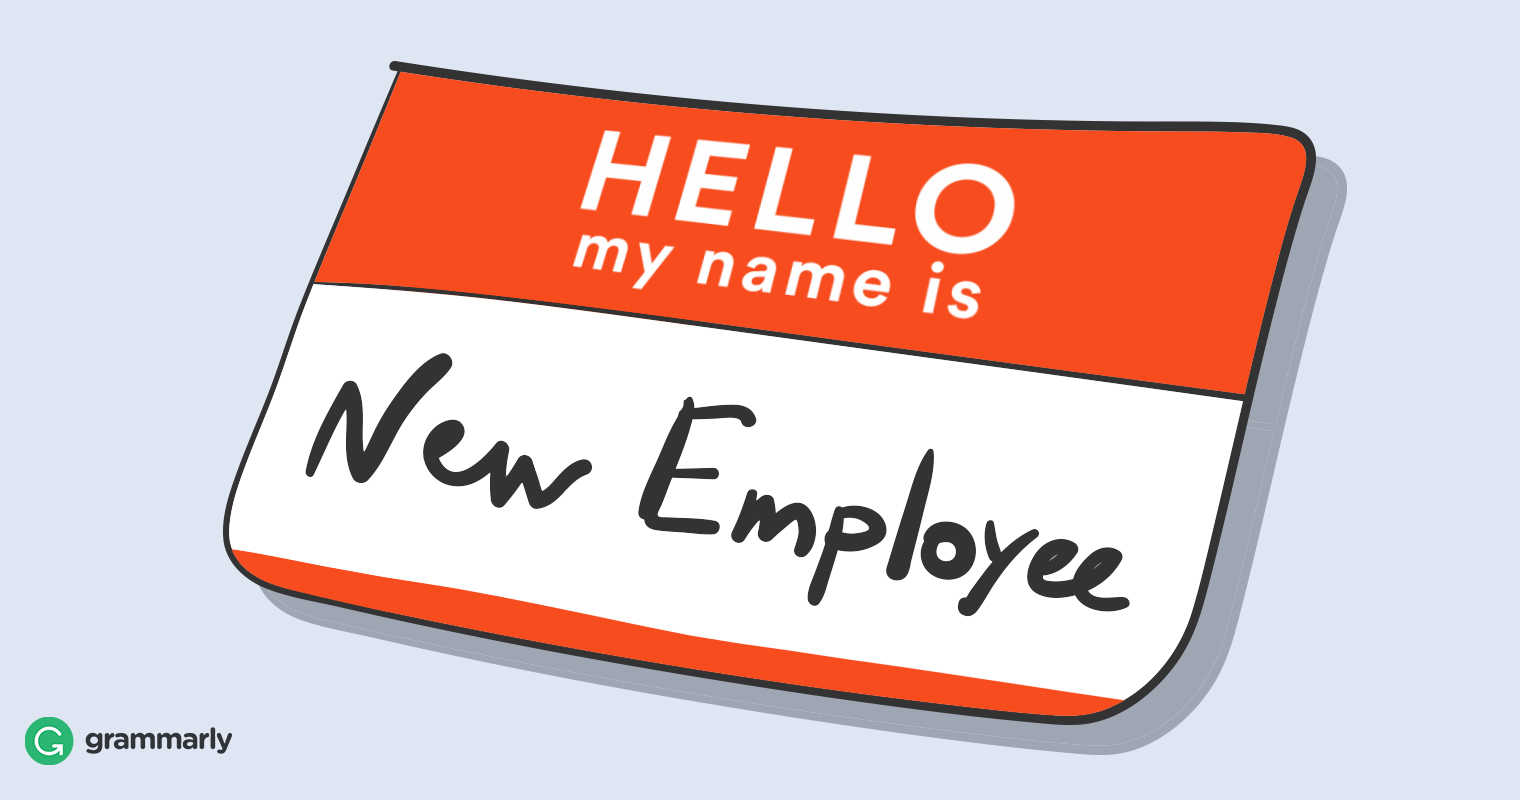 7 Tips for Your First Week at a New Job